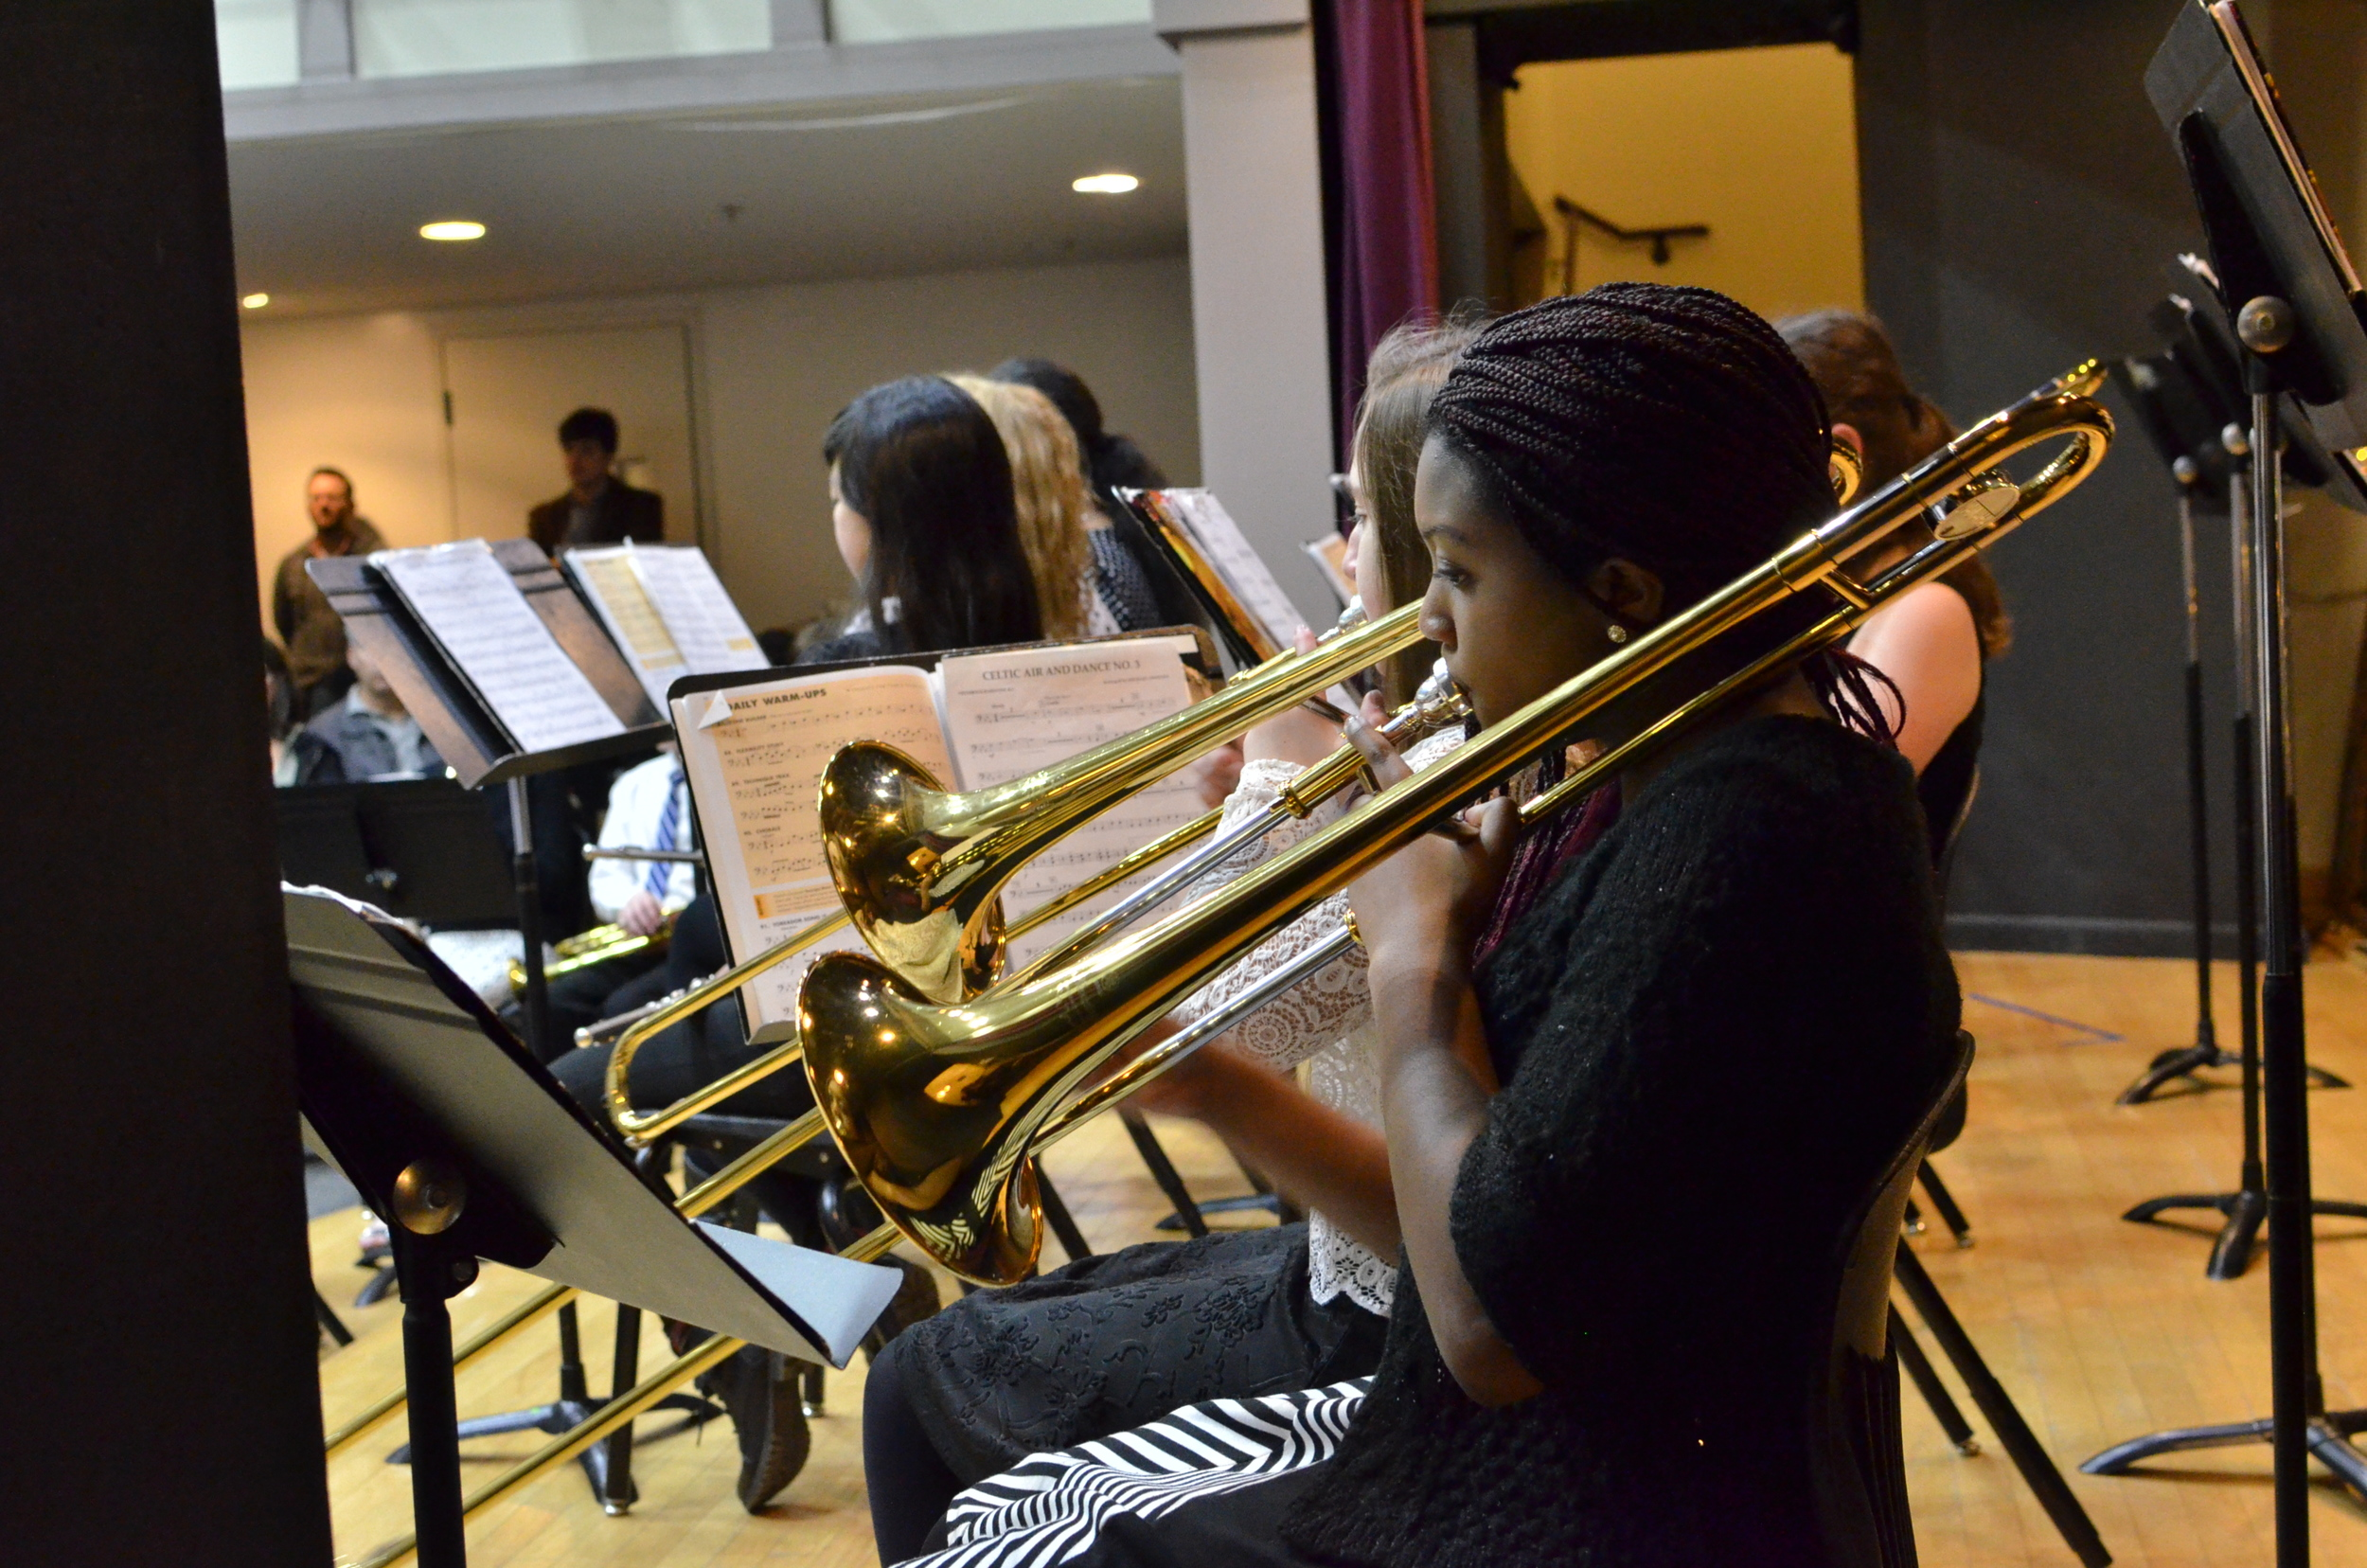 Students learn that music communicates emotions and ideas much differently than words.